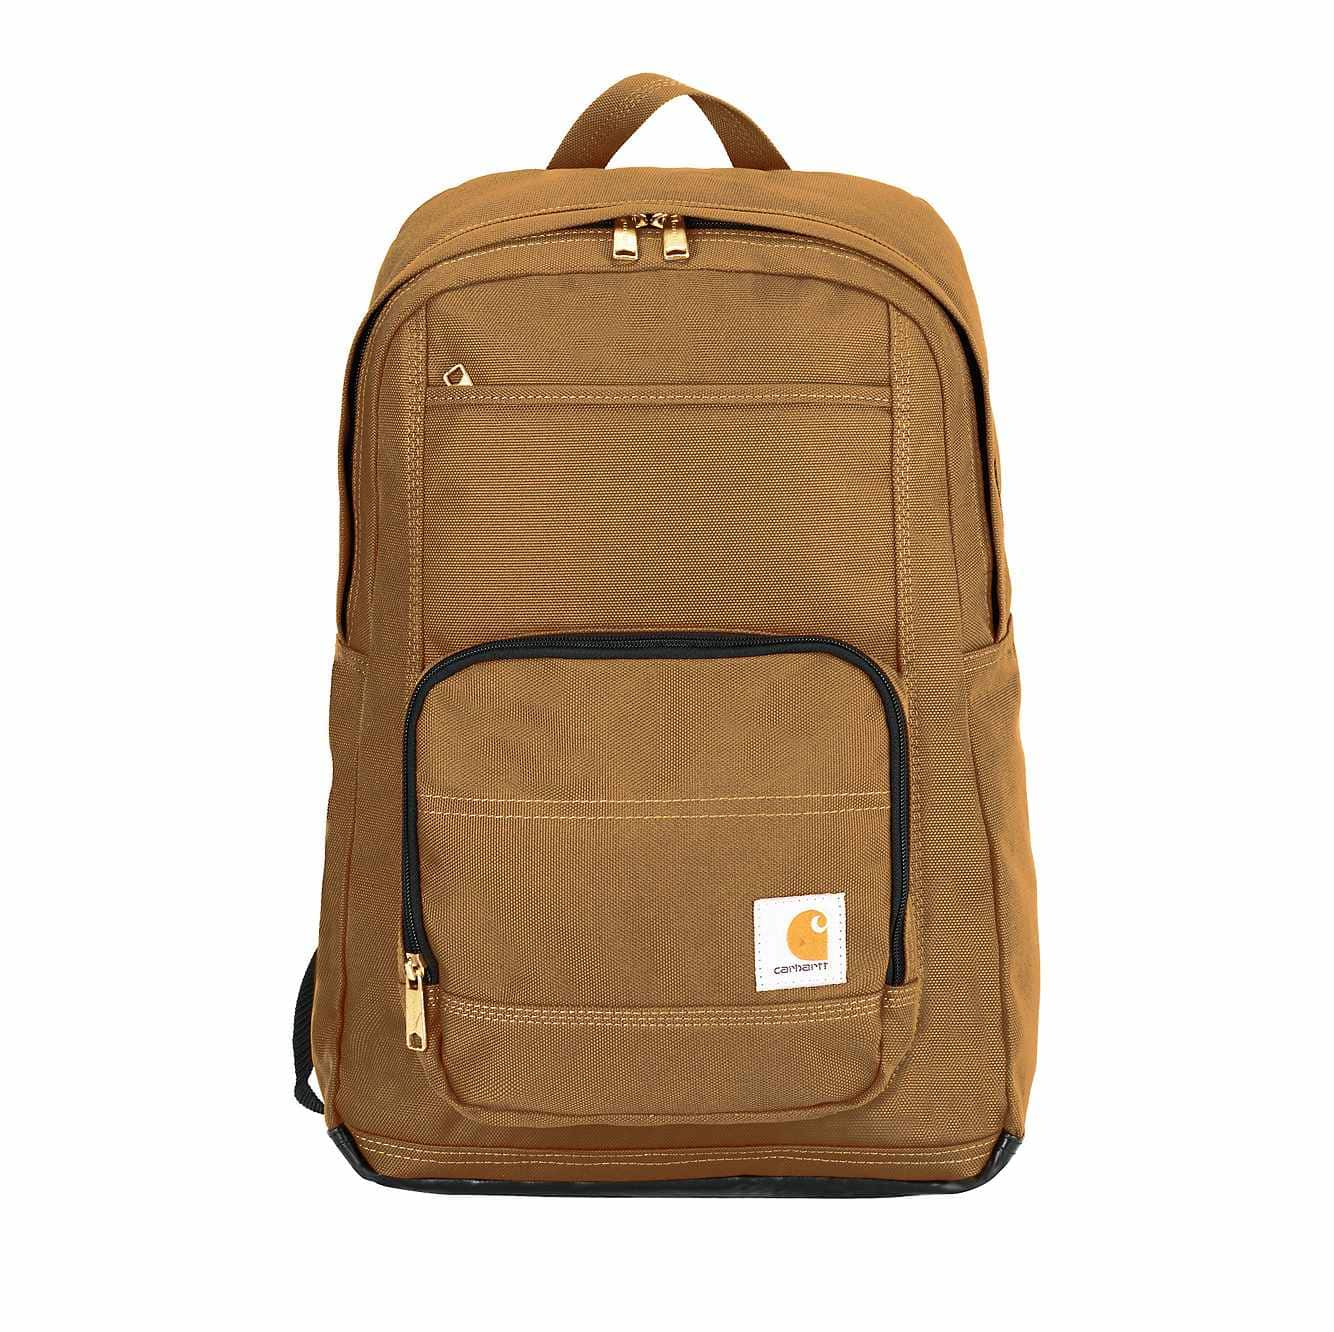 Picture of Legacy Classic Work Pack in Carhartt Brown